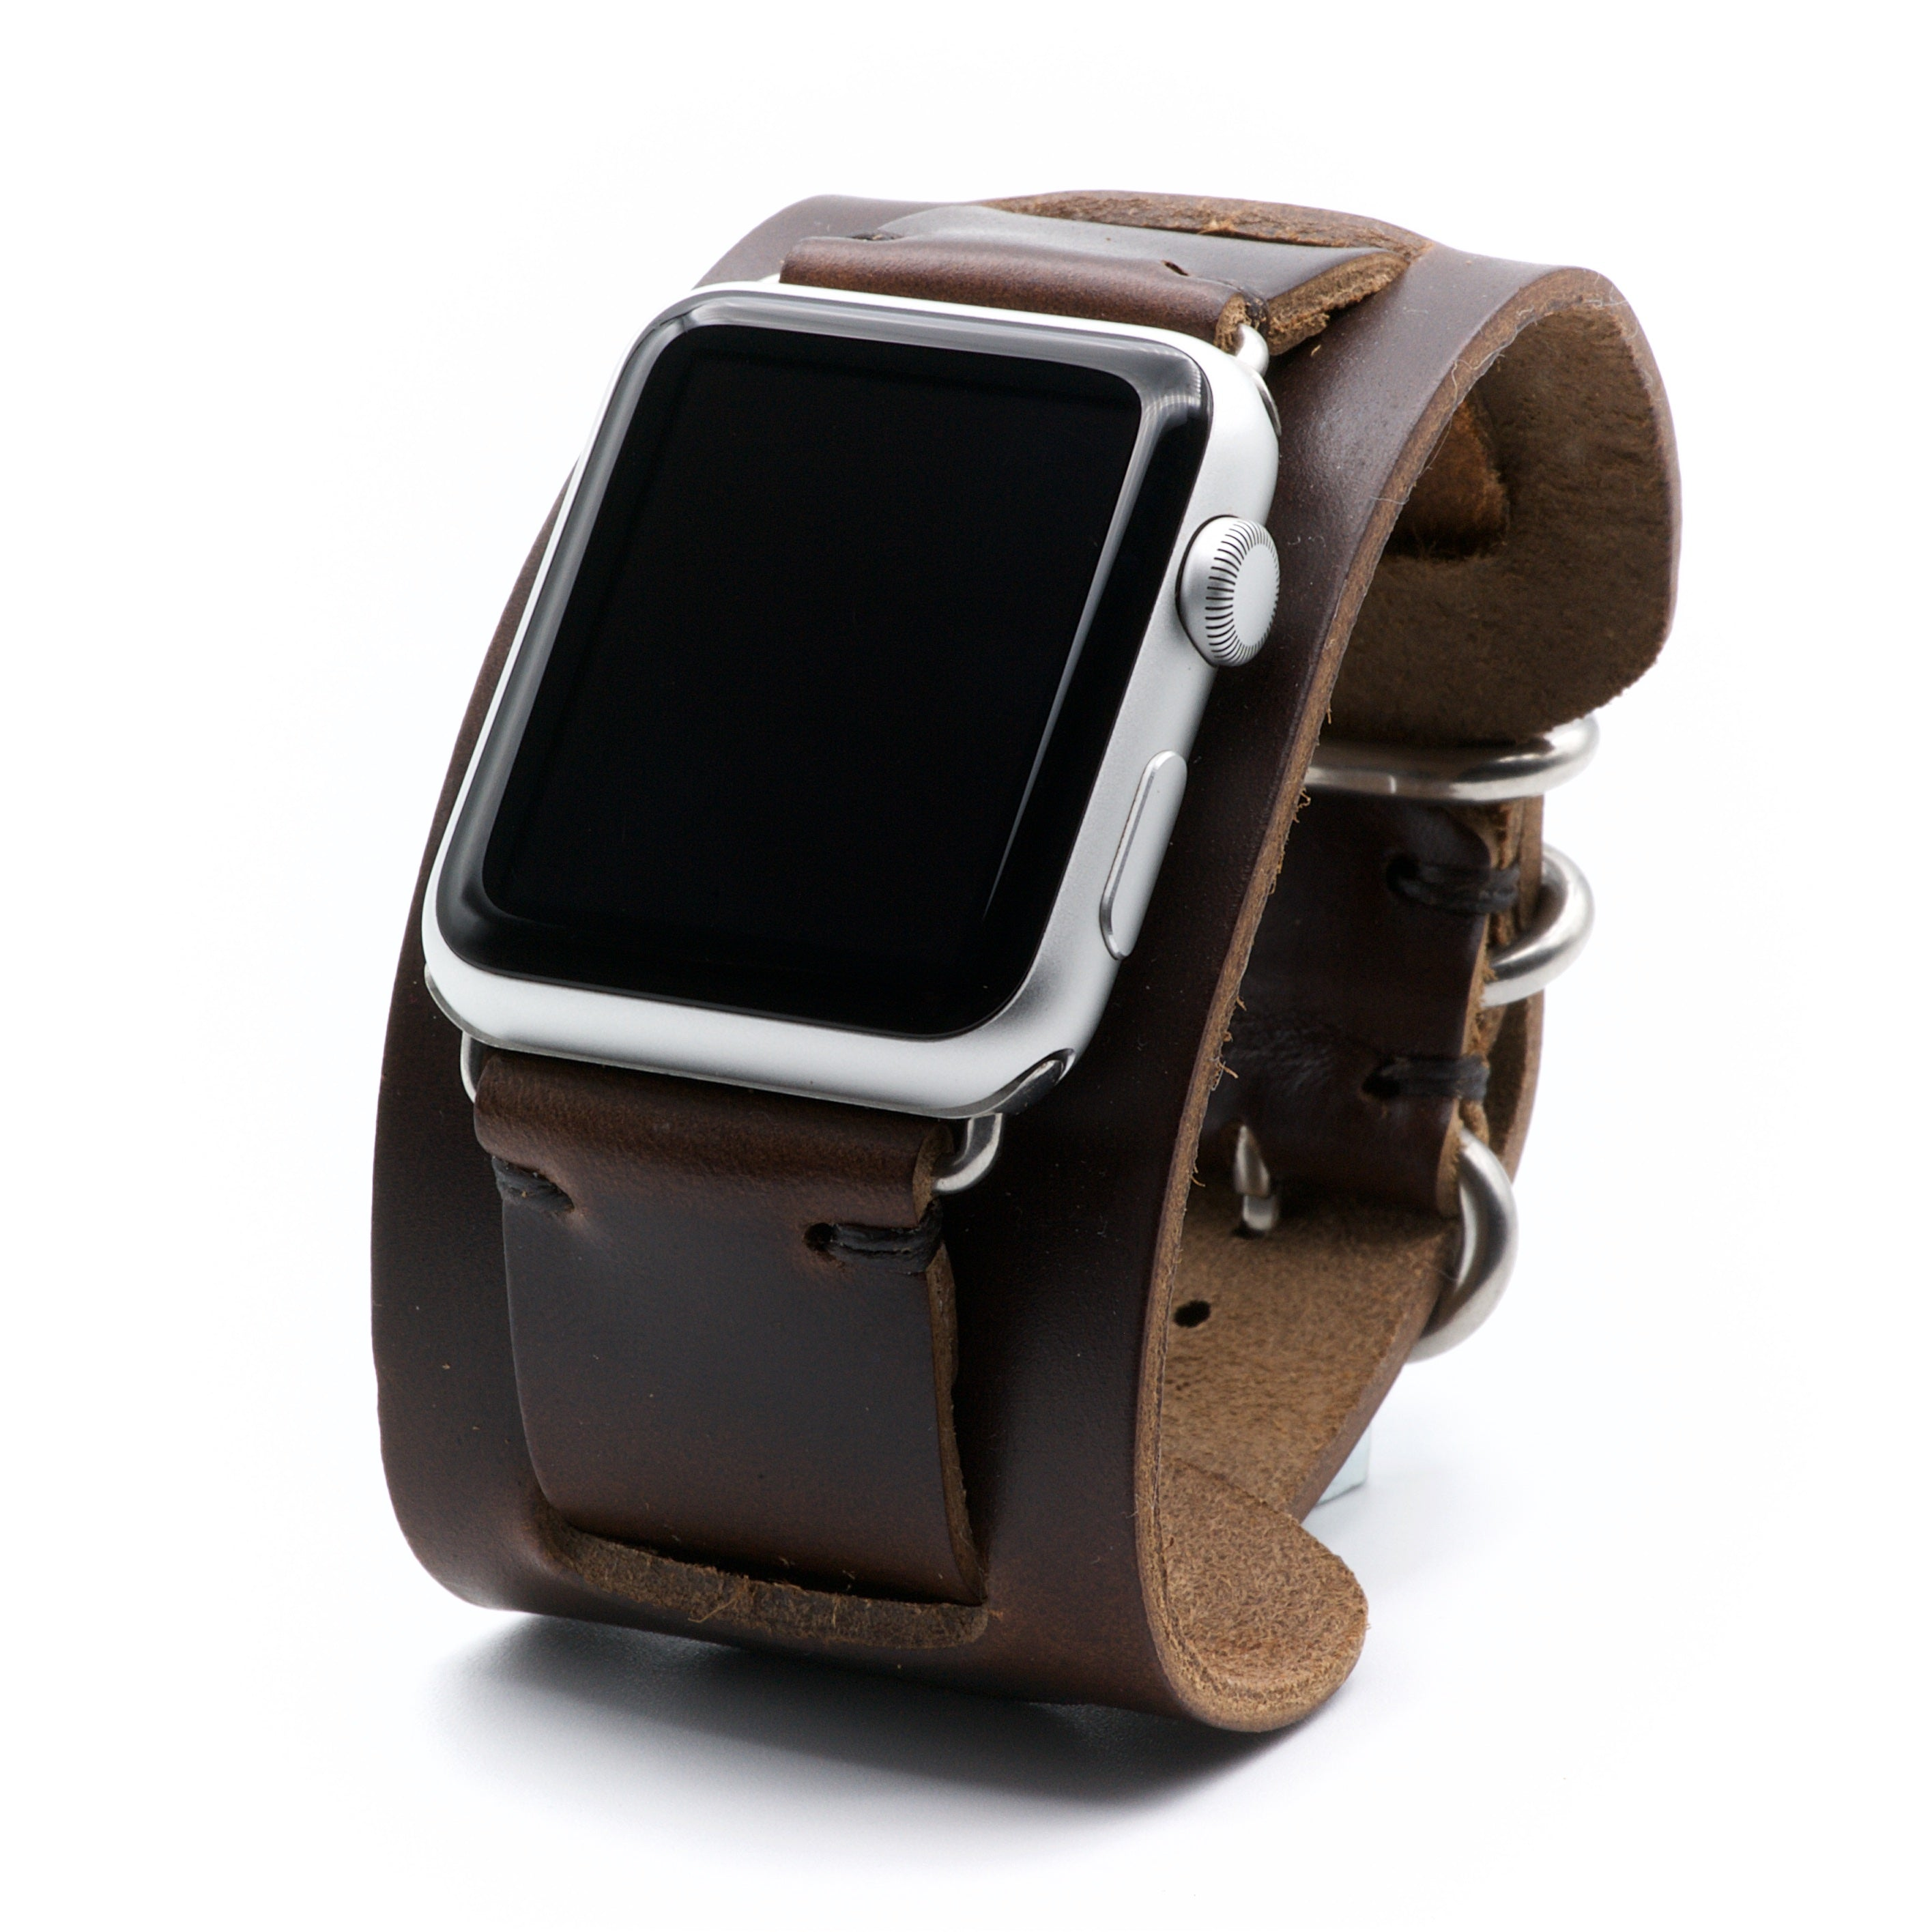 Apple Watch Cuff Band for Series 4, 3, 2, 1, and Sport Editions - by E3 Supply Co. - Brown Chromexcel Horween Leather